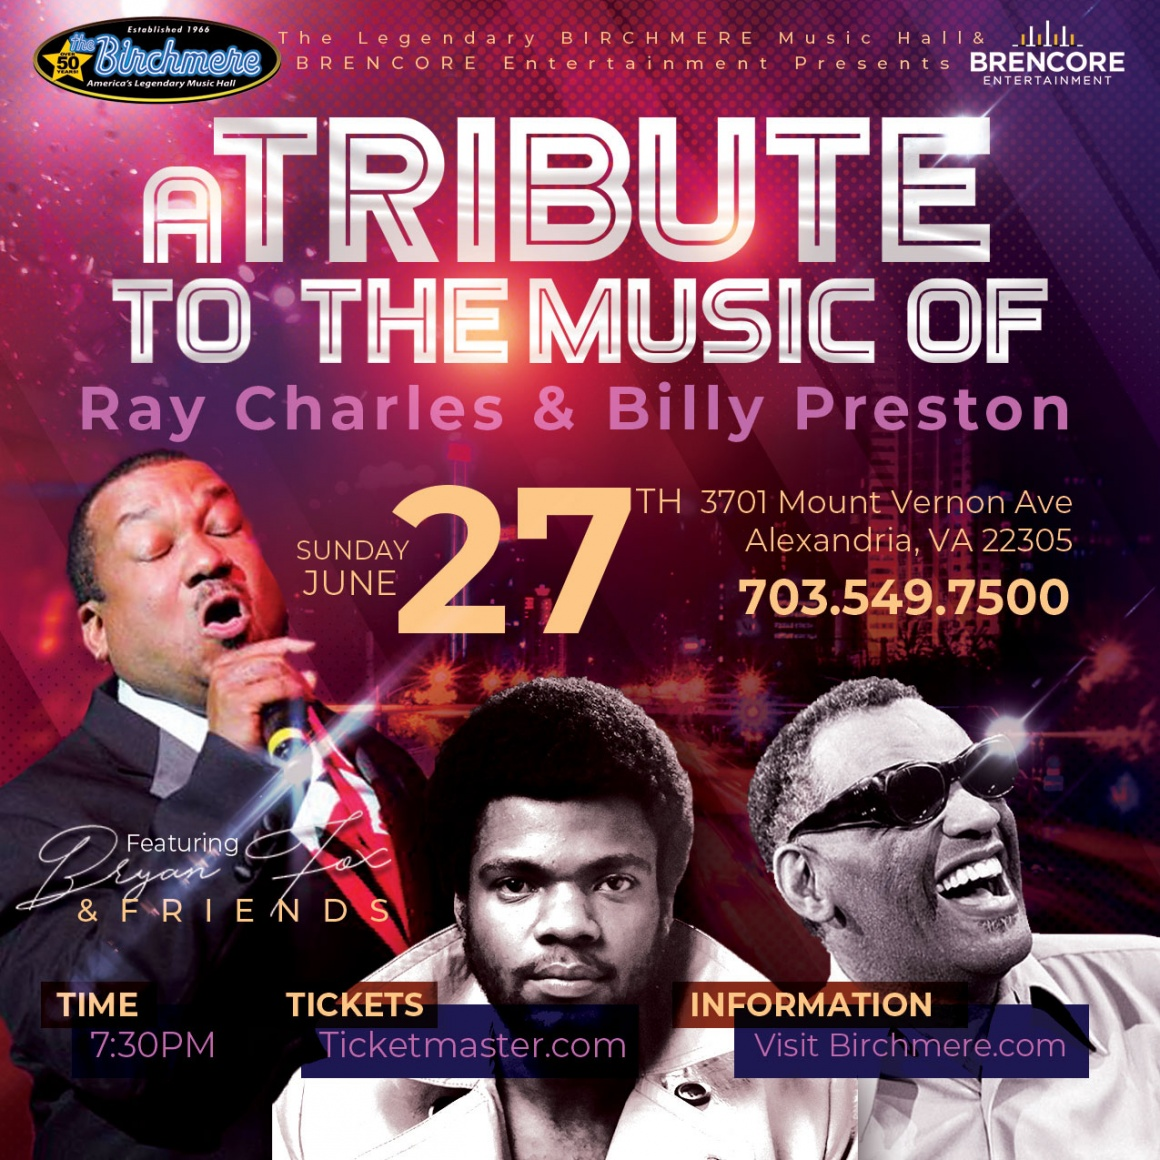 A Tribute to the Music of Ray Charles & Billy Preston